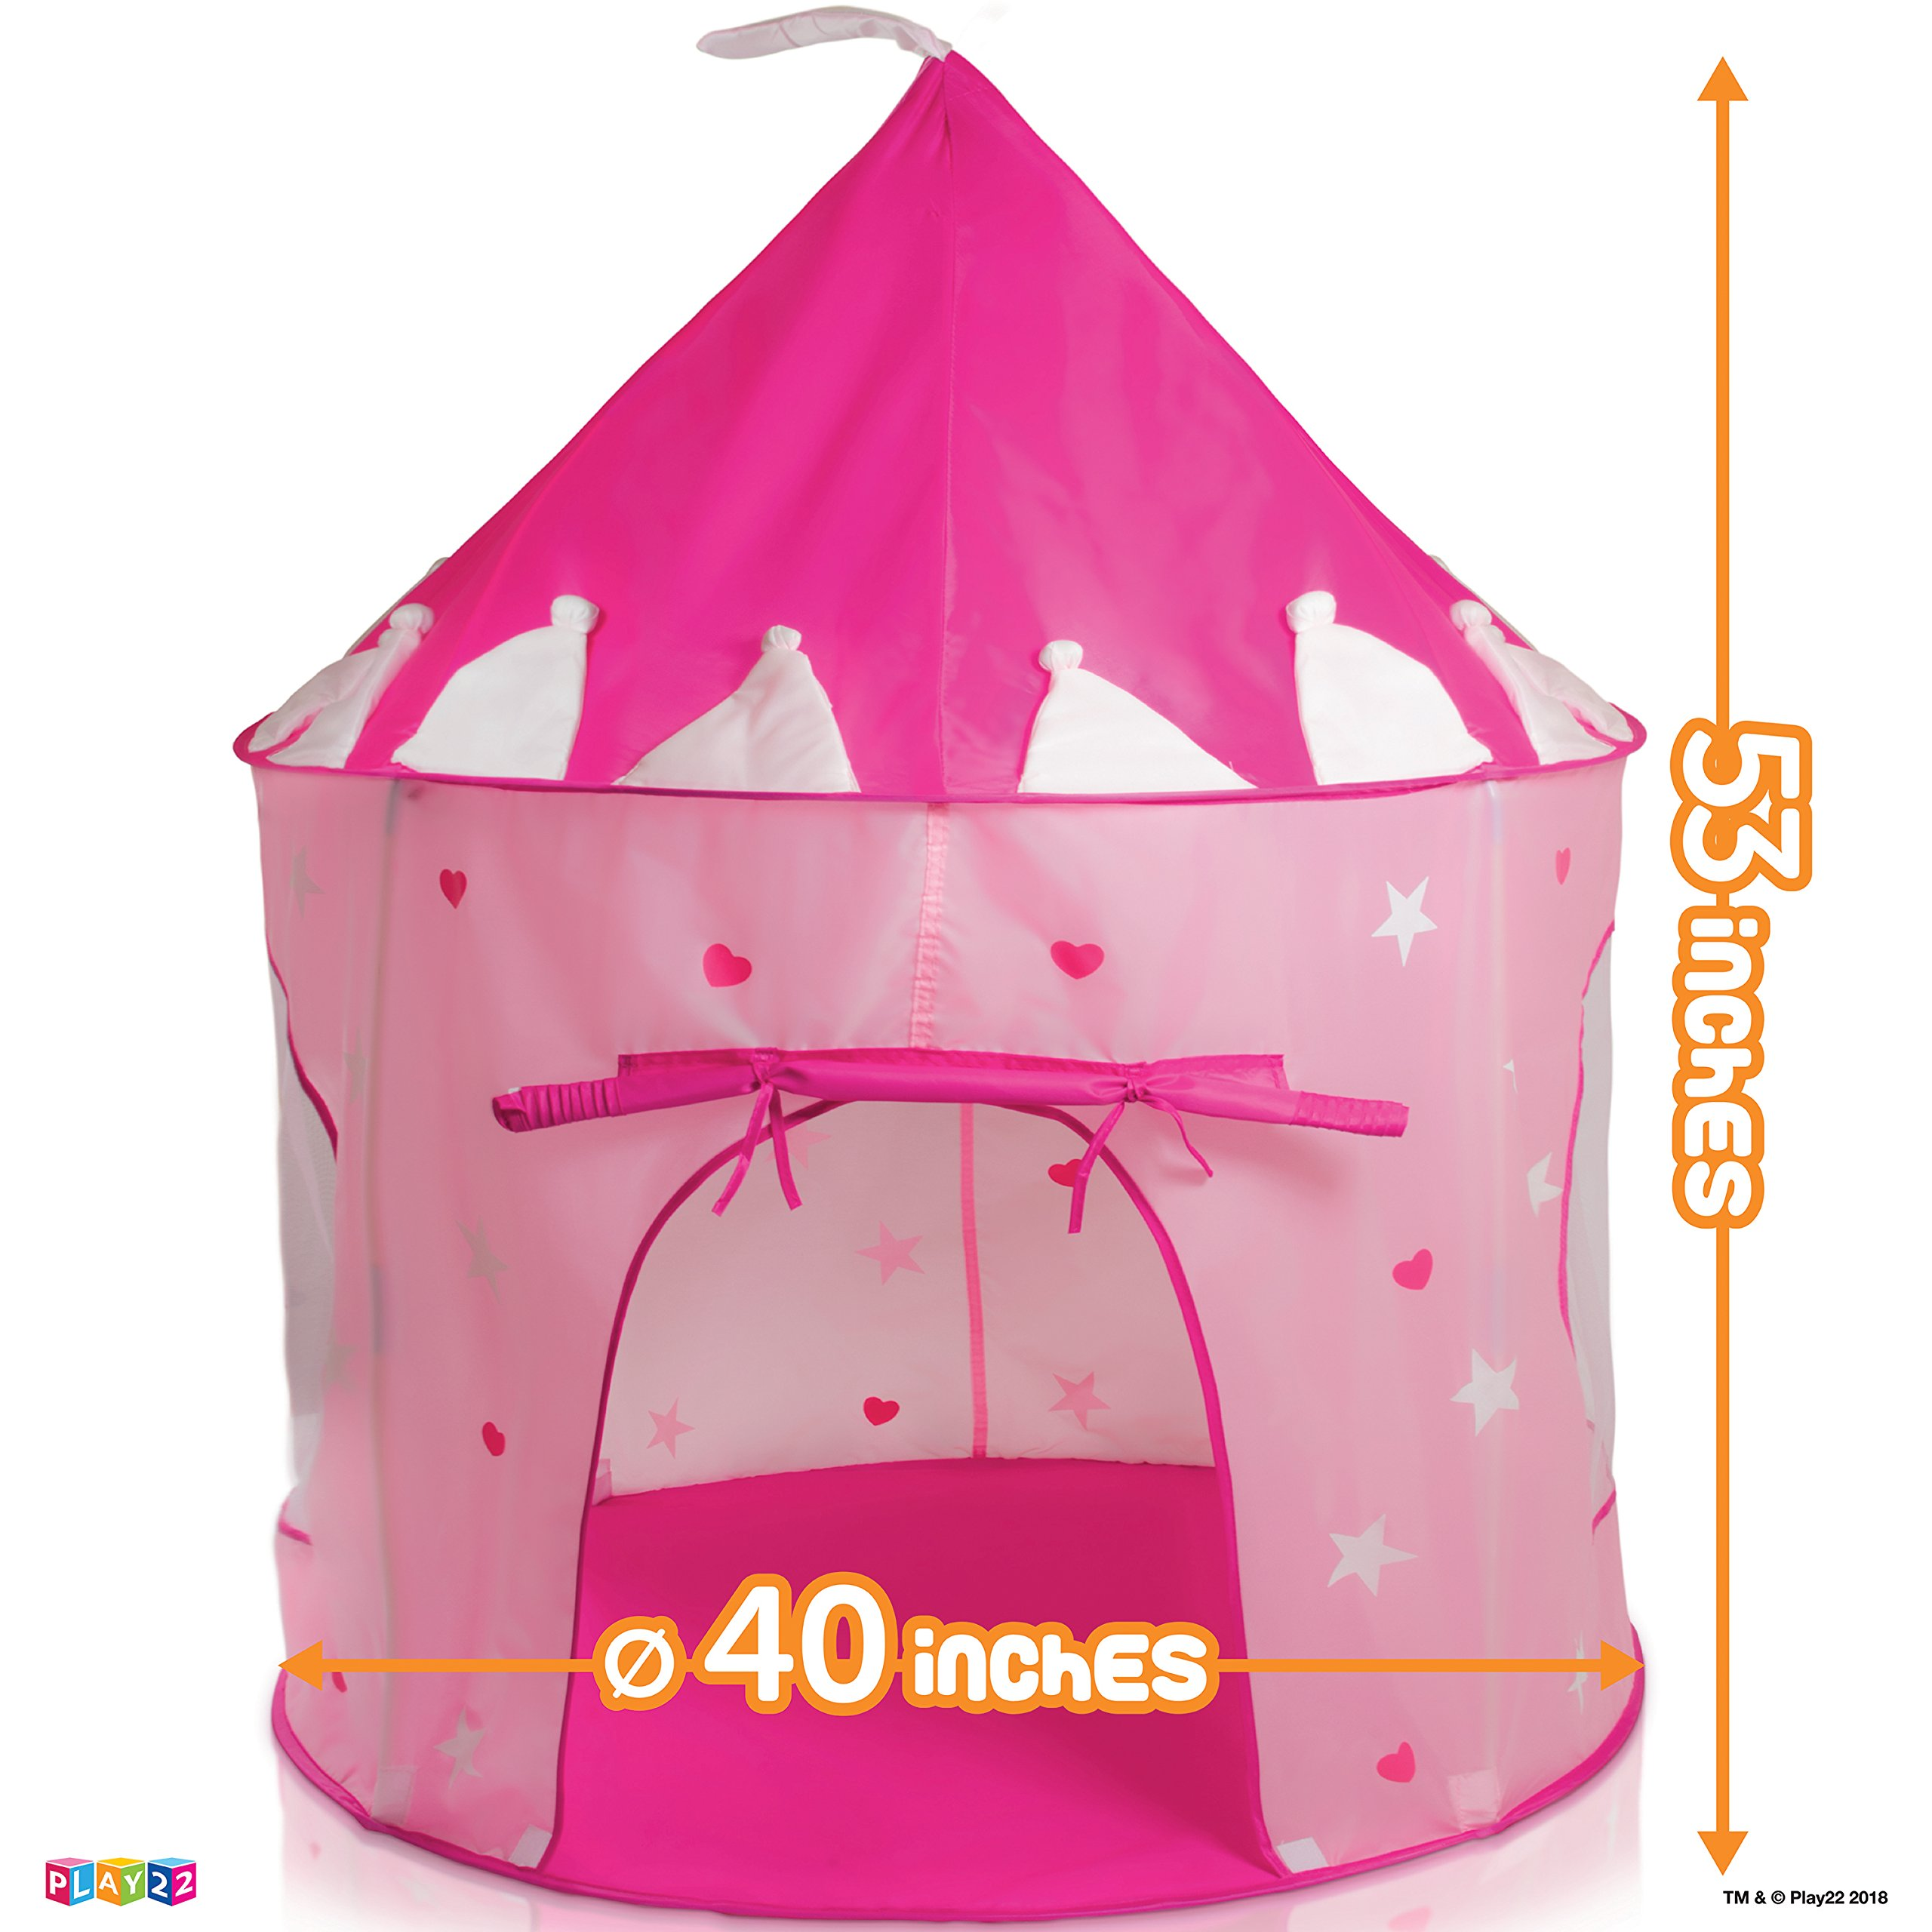 Play22 Play Tent Princess Castle Pink - Kids Tent Features Glow in The Dark Stars - Portable Kids Play Tent - Kids Pop Up Tent Foldable Into A Carrying Bag - Indoor and Outdoor Use - Original by Play22 (Image #4)